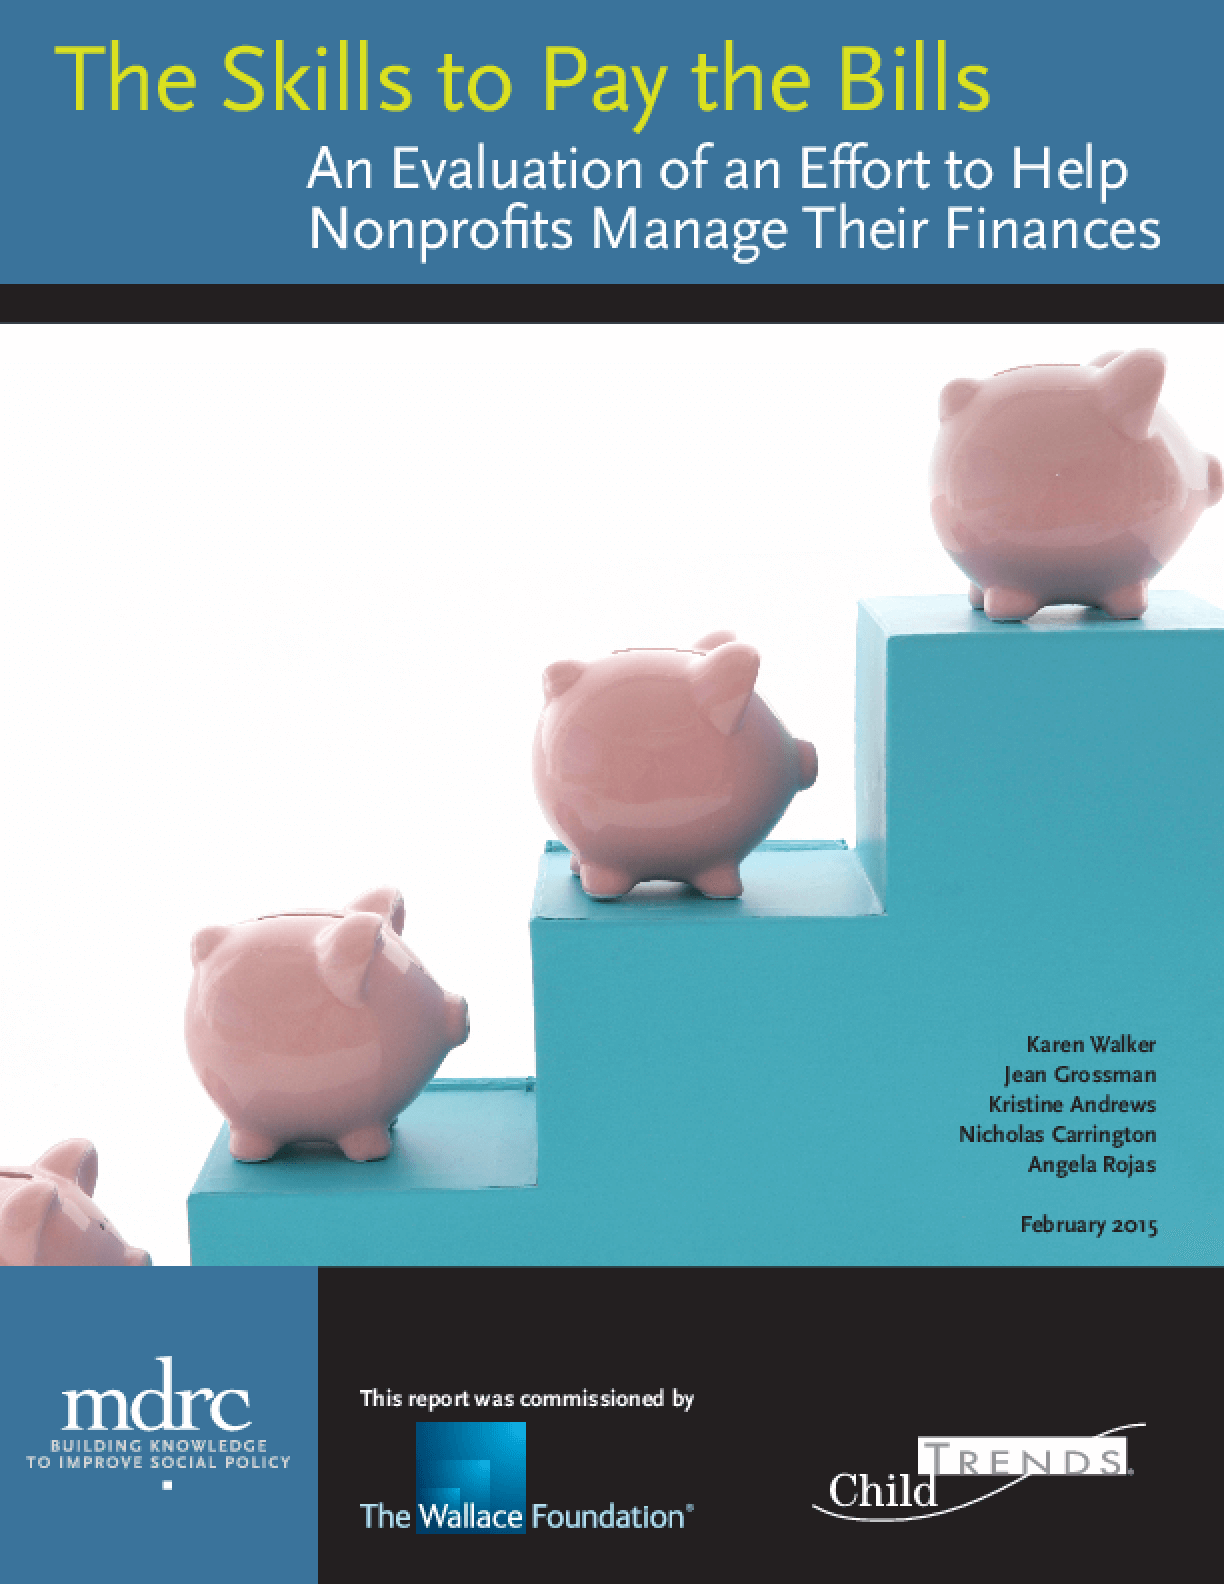 The Skills to Pay the Bills: An Evaluation of an Effort to Help Nonprofits Manage Their Finances